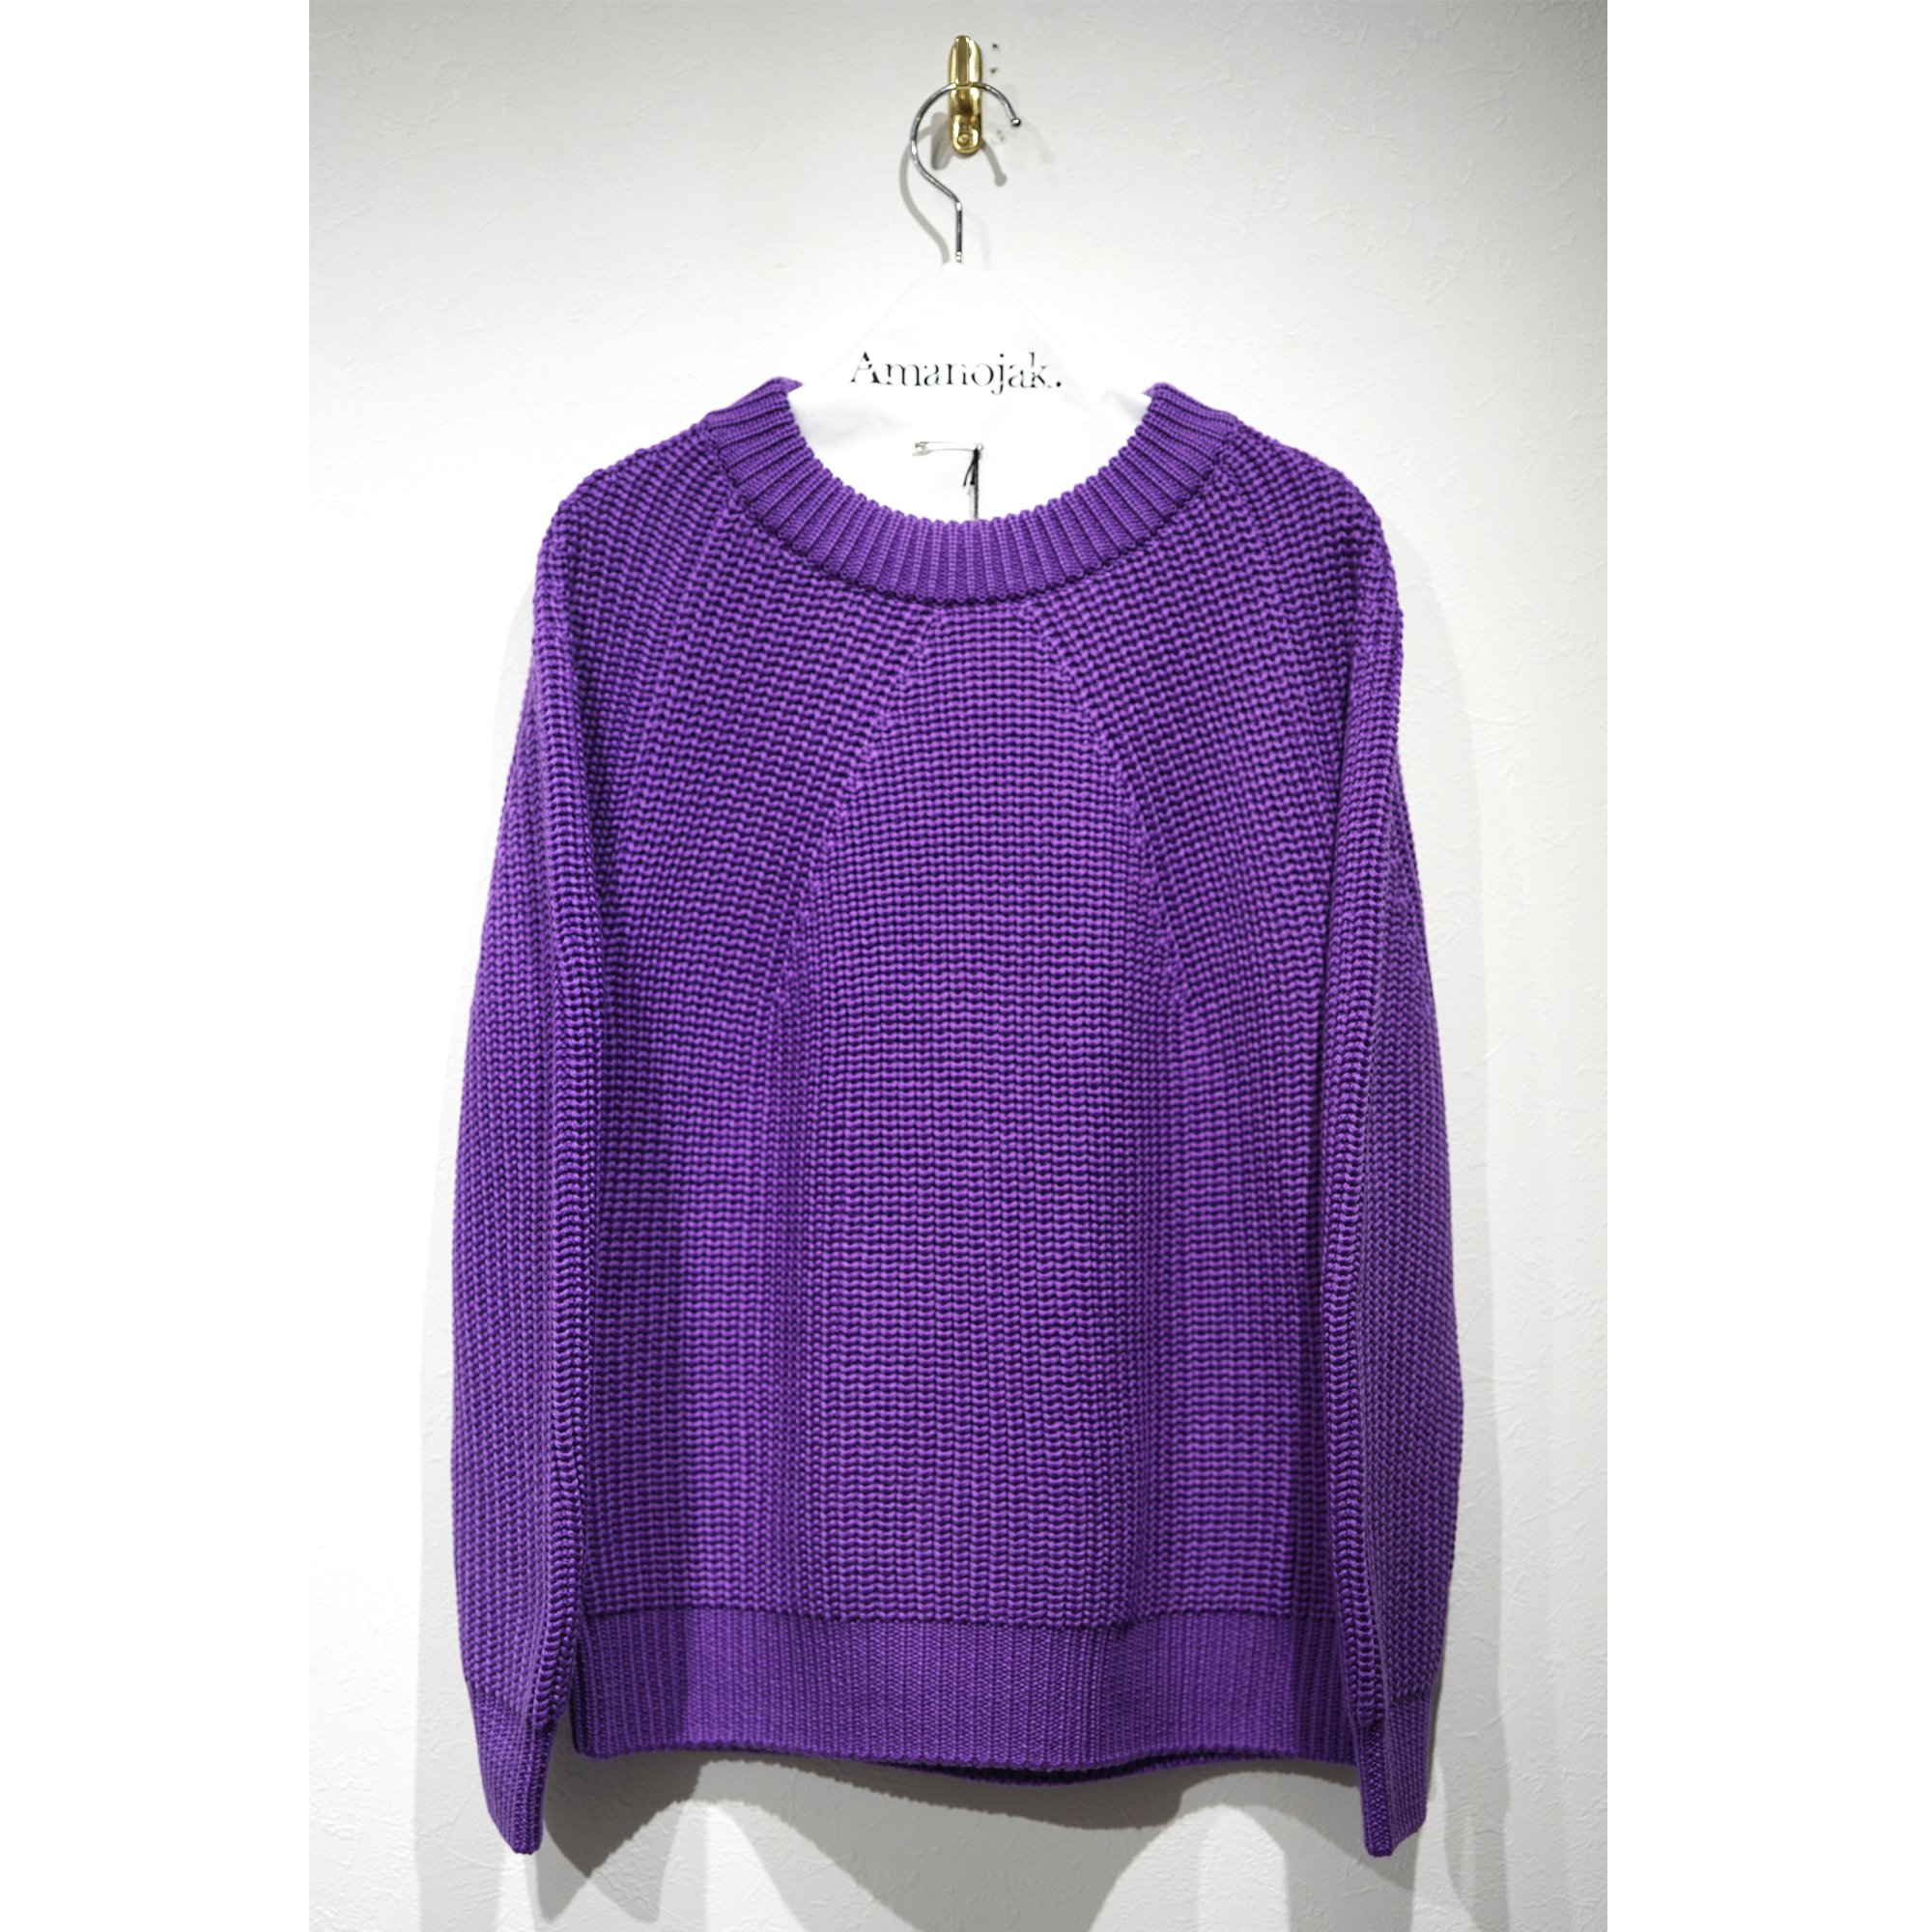 BATONER-SIGNATURE CREW NECK(WOMENS) PURPLE